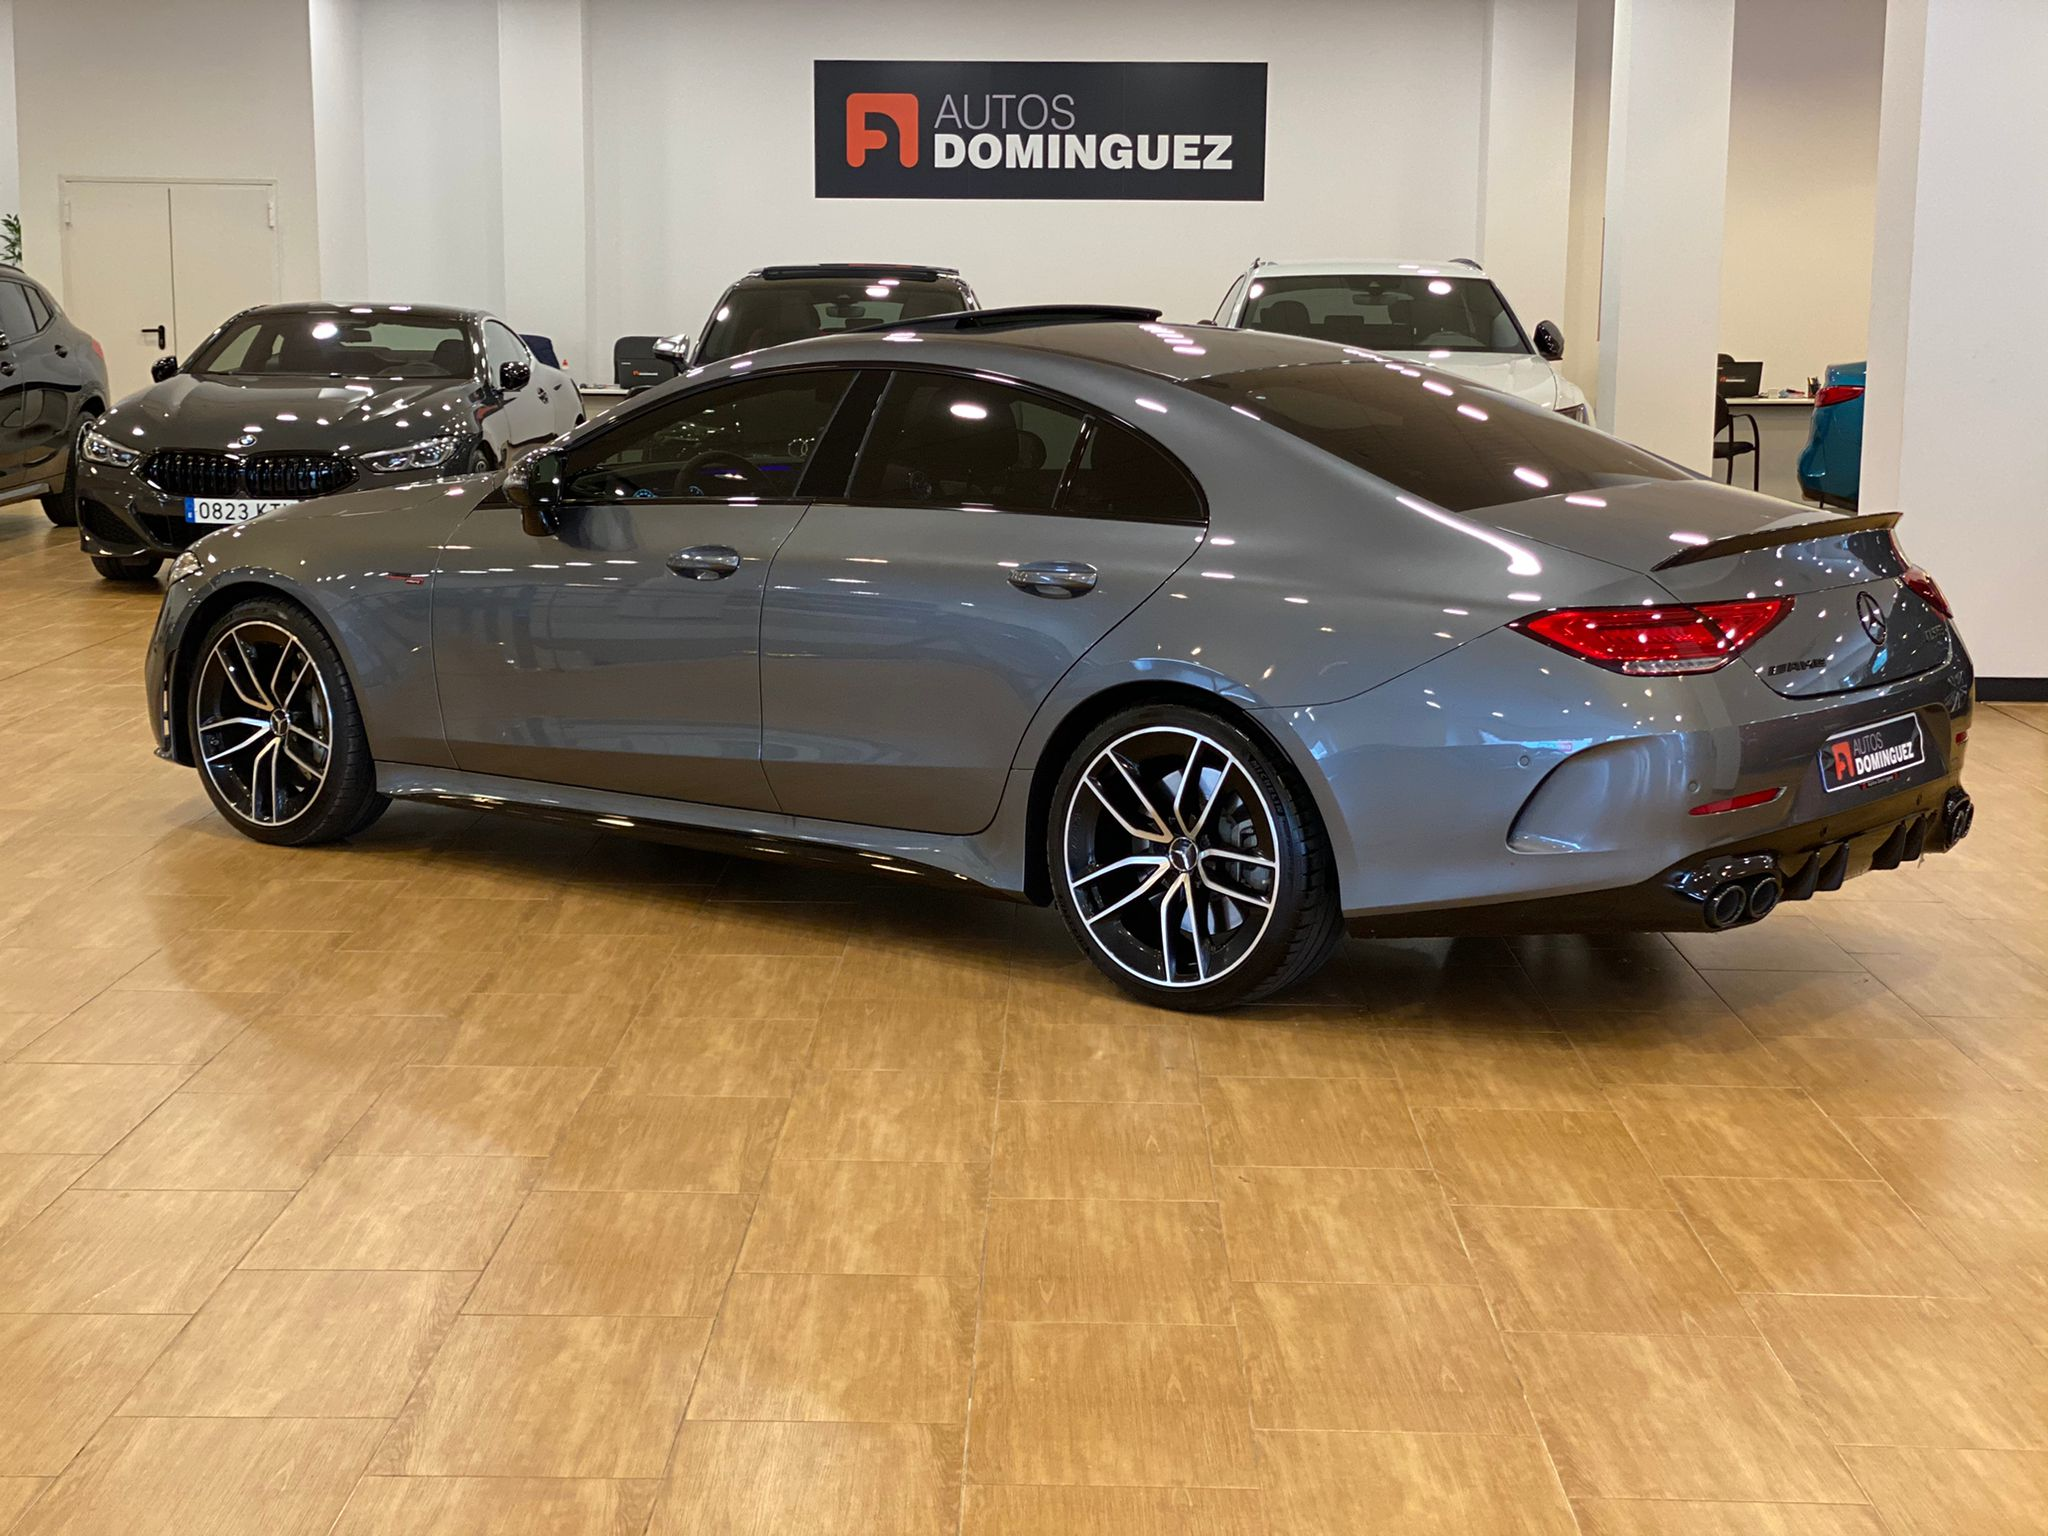 MERCEDES-AMG CLS 53 EQ 435 CV 4MATIC+ 5